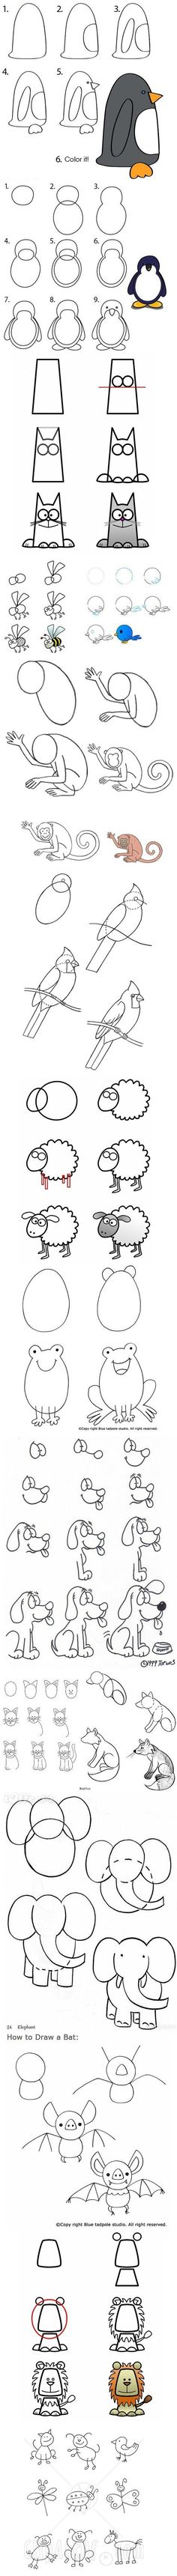 How-To: Draw Cute Animals Fun for kids!! - I need to study these!